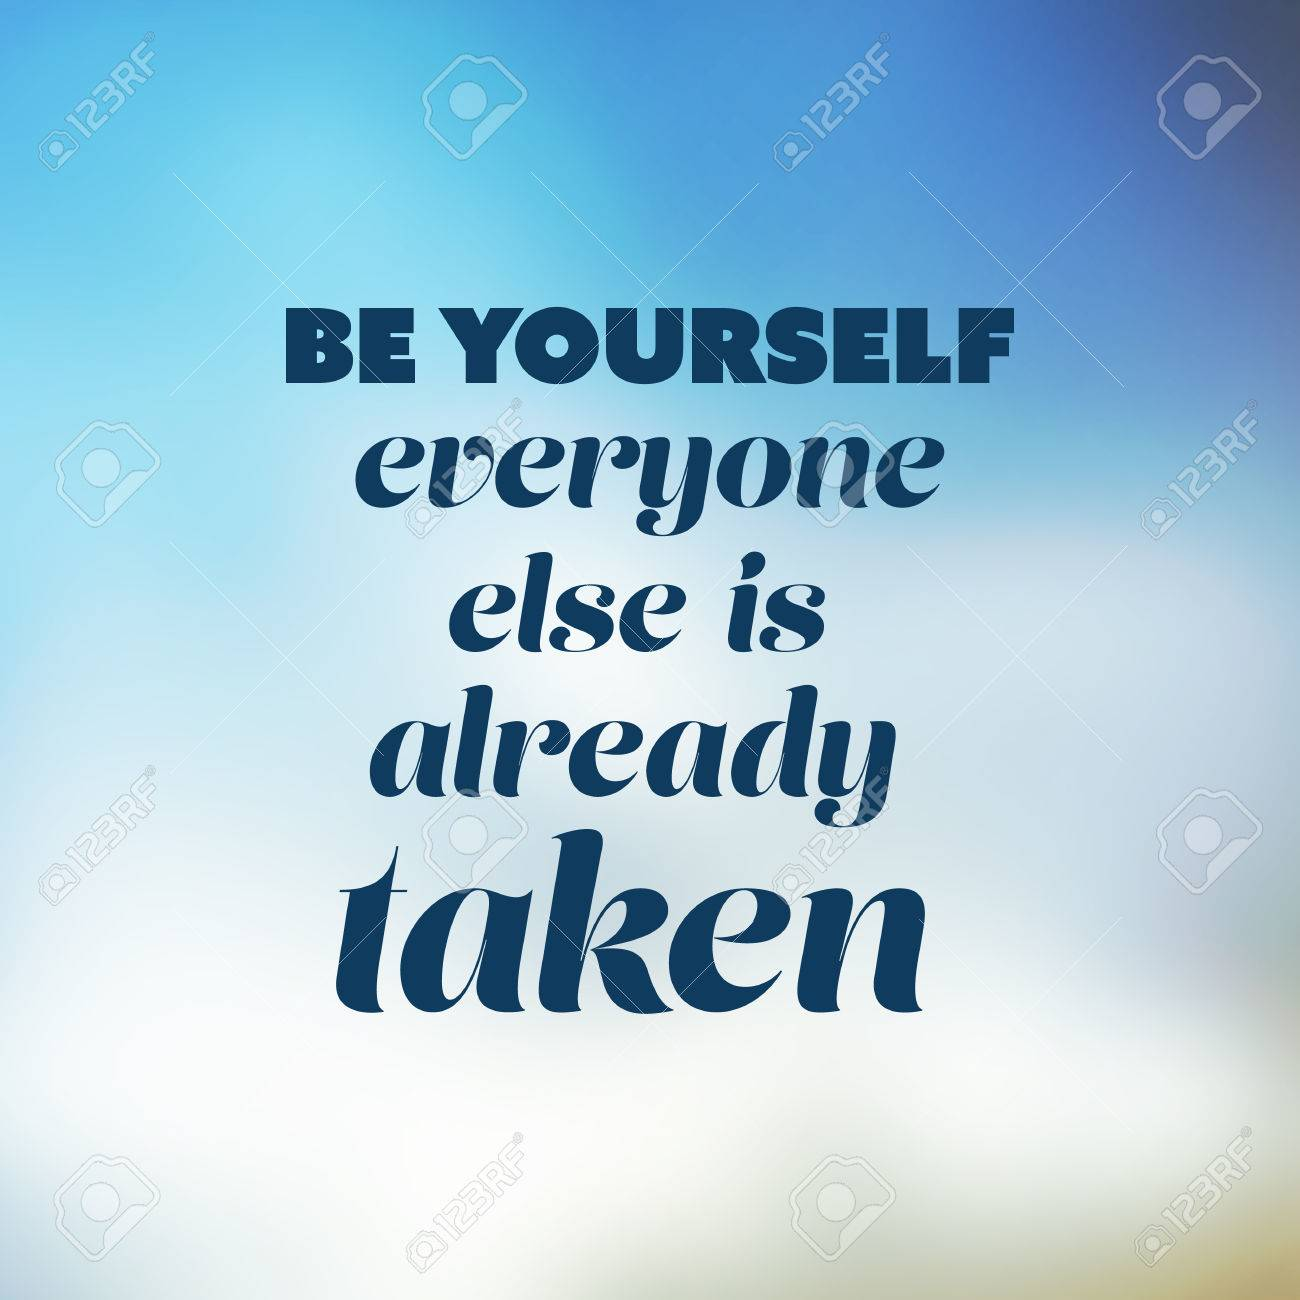 Be Yourself Everyone Else Is Already Taken Inspirational Quote